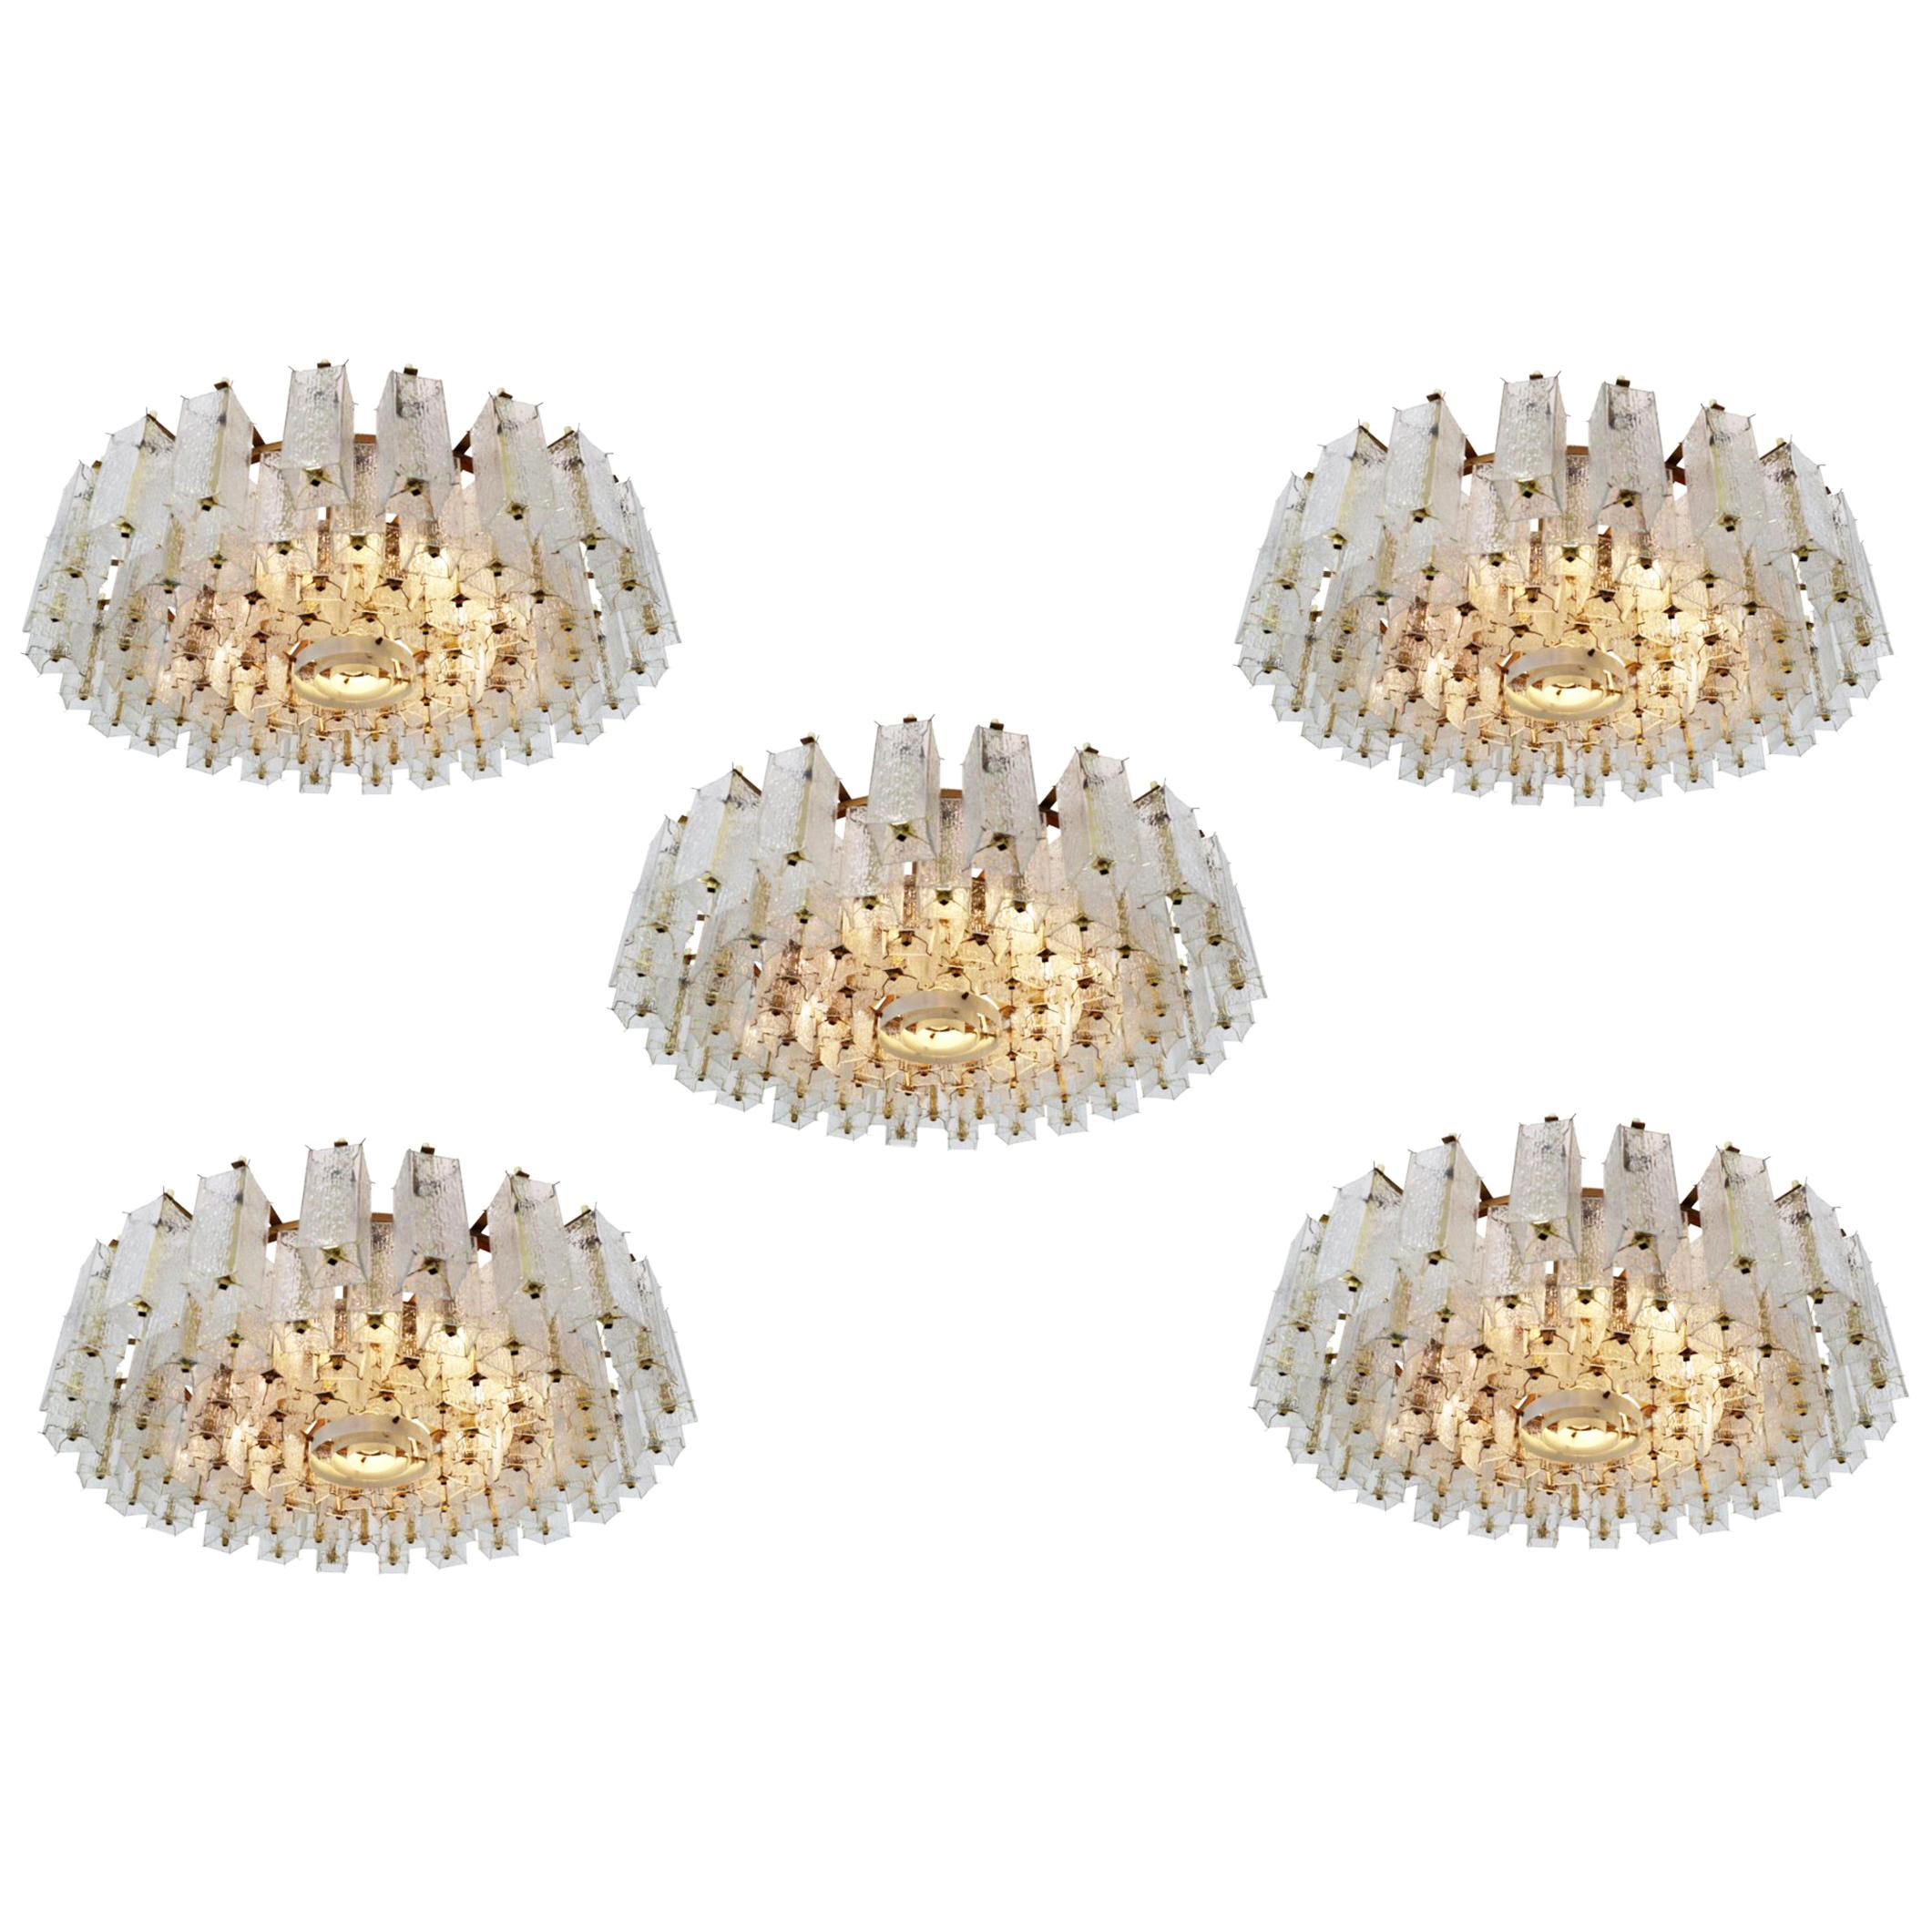 Extreme Large Midcentury Chandeliers in Structured Glass and Brass from Europe